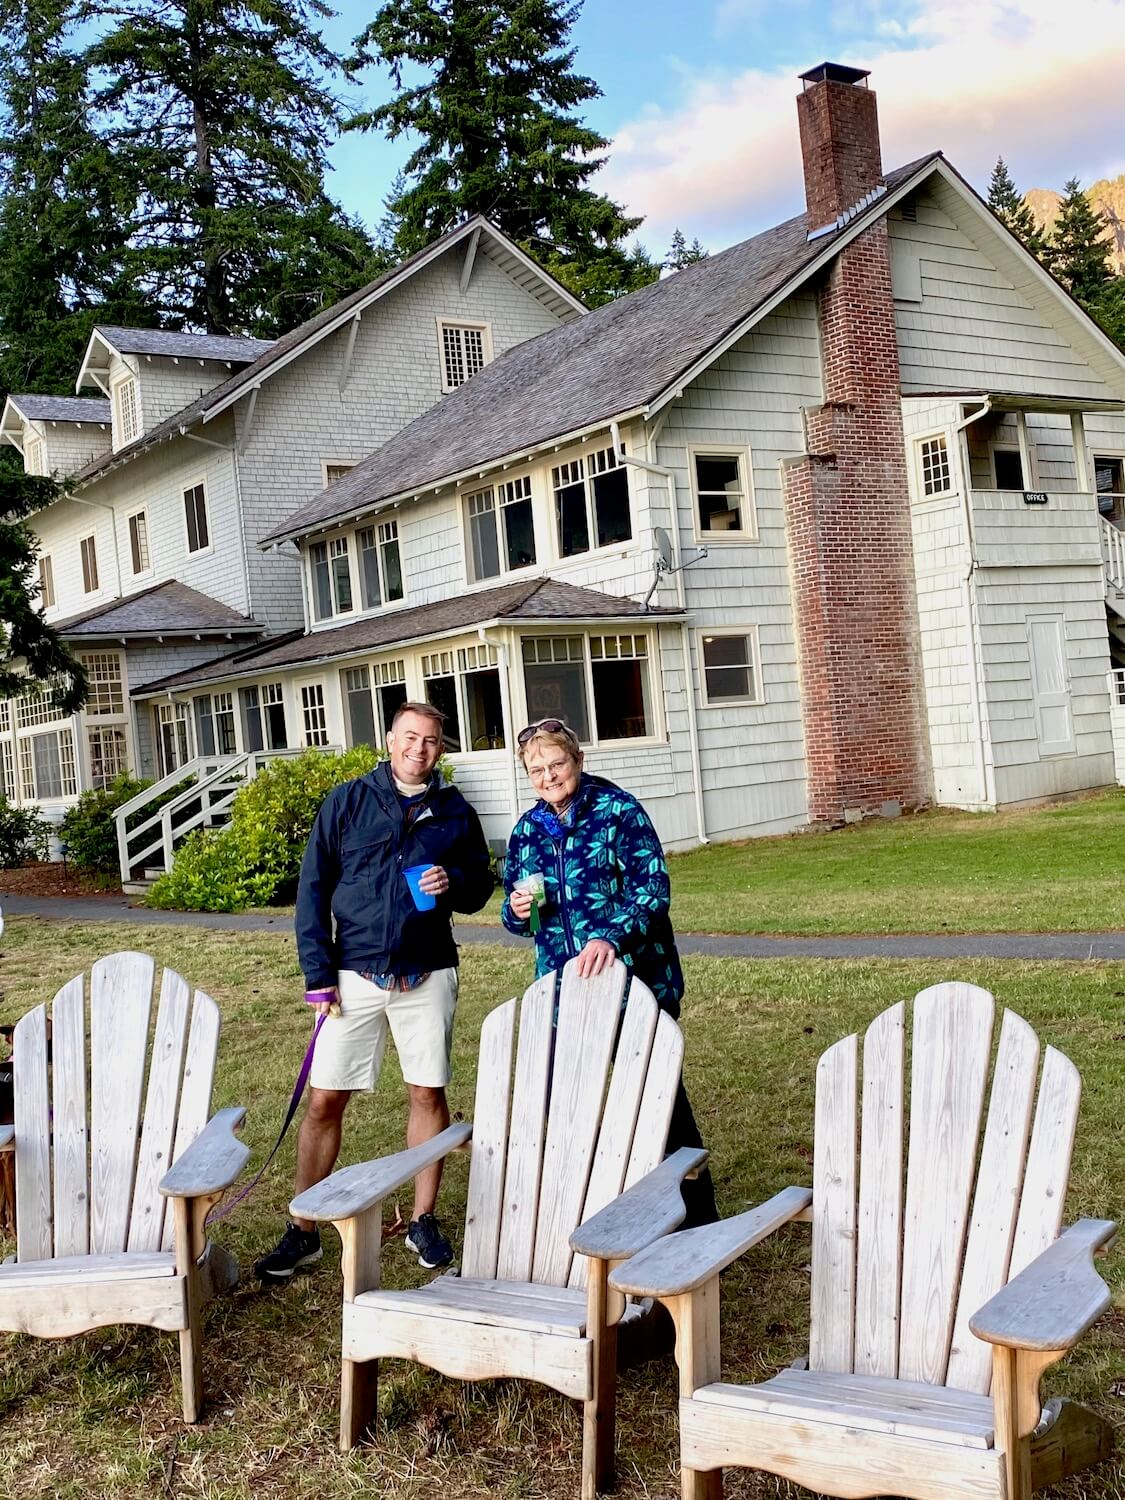 The outside of Lake Crescent Lodge in amongst nature. These two lodge visitors are enjoying a beverage next to three oversized Adirondack chairs. The sky is changing to sunset colors with a brush of pink across the otherwise blue, tree lined sky.